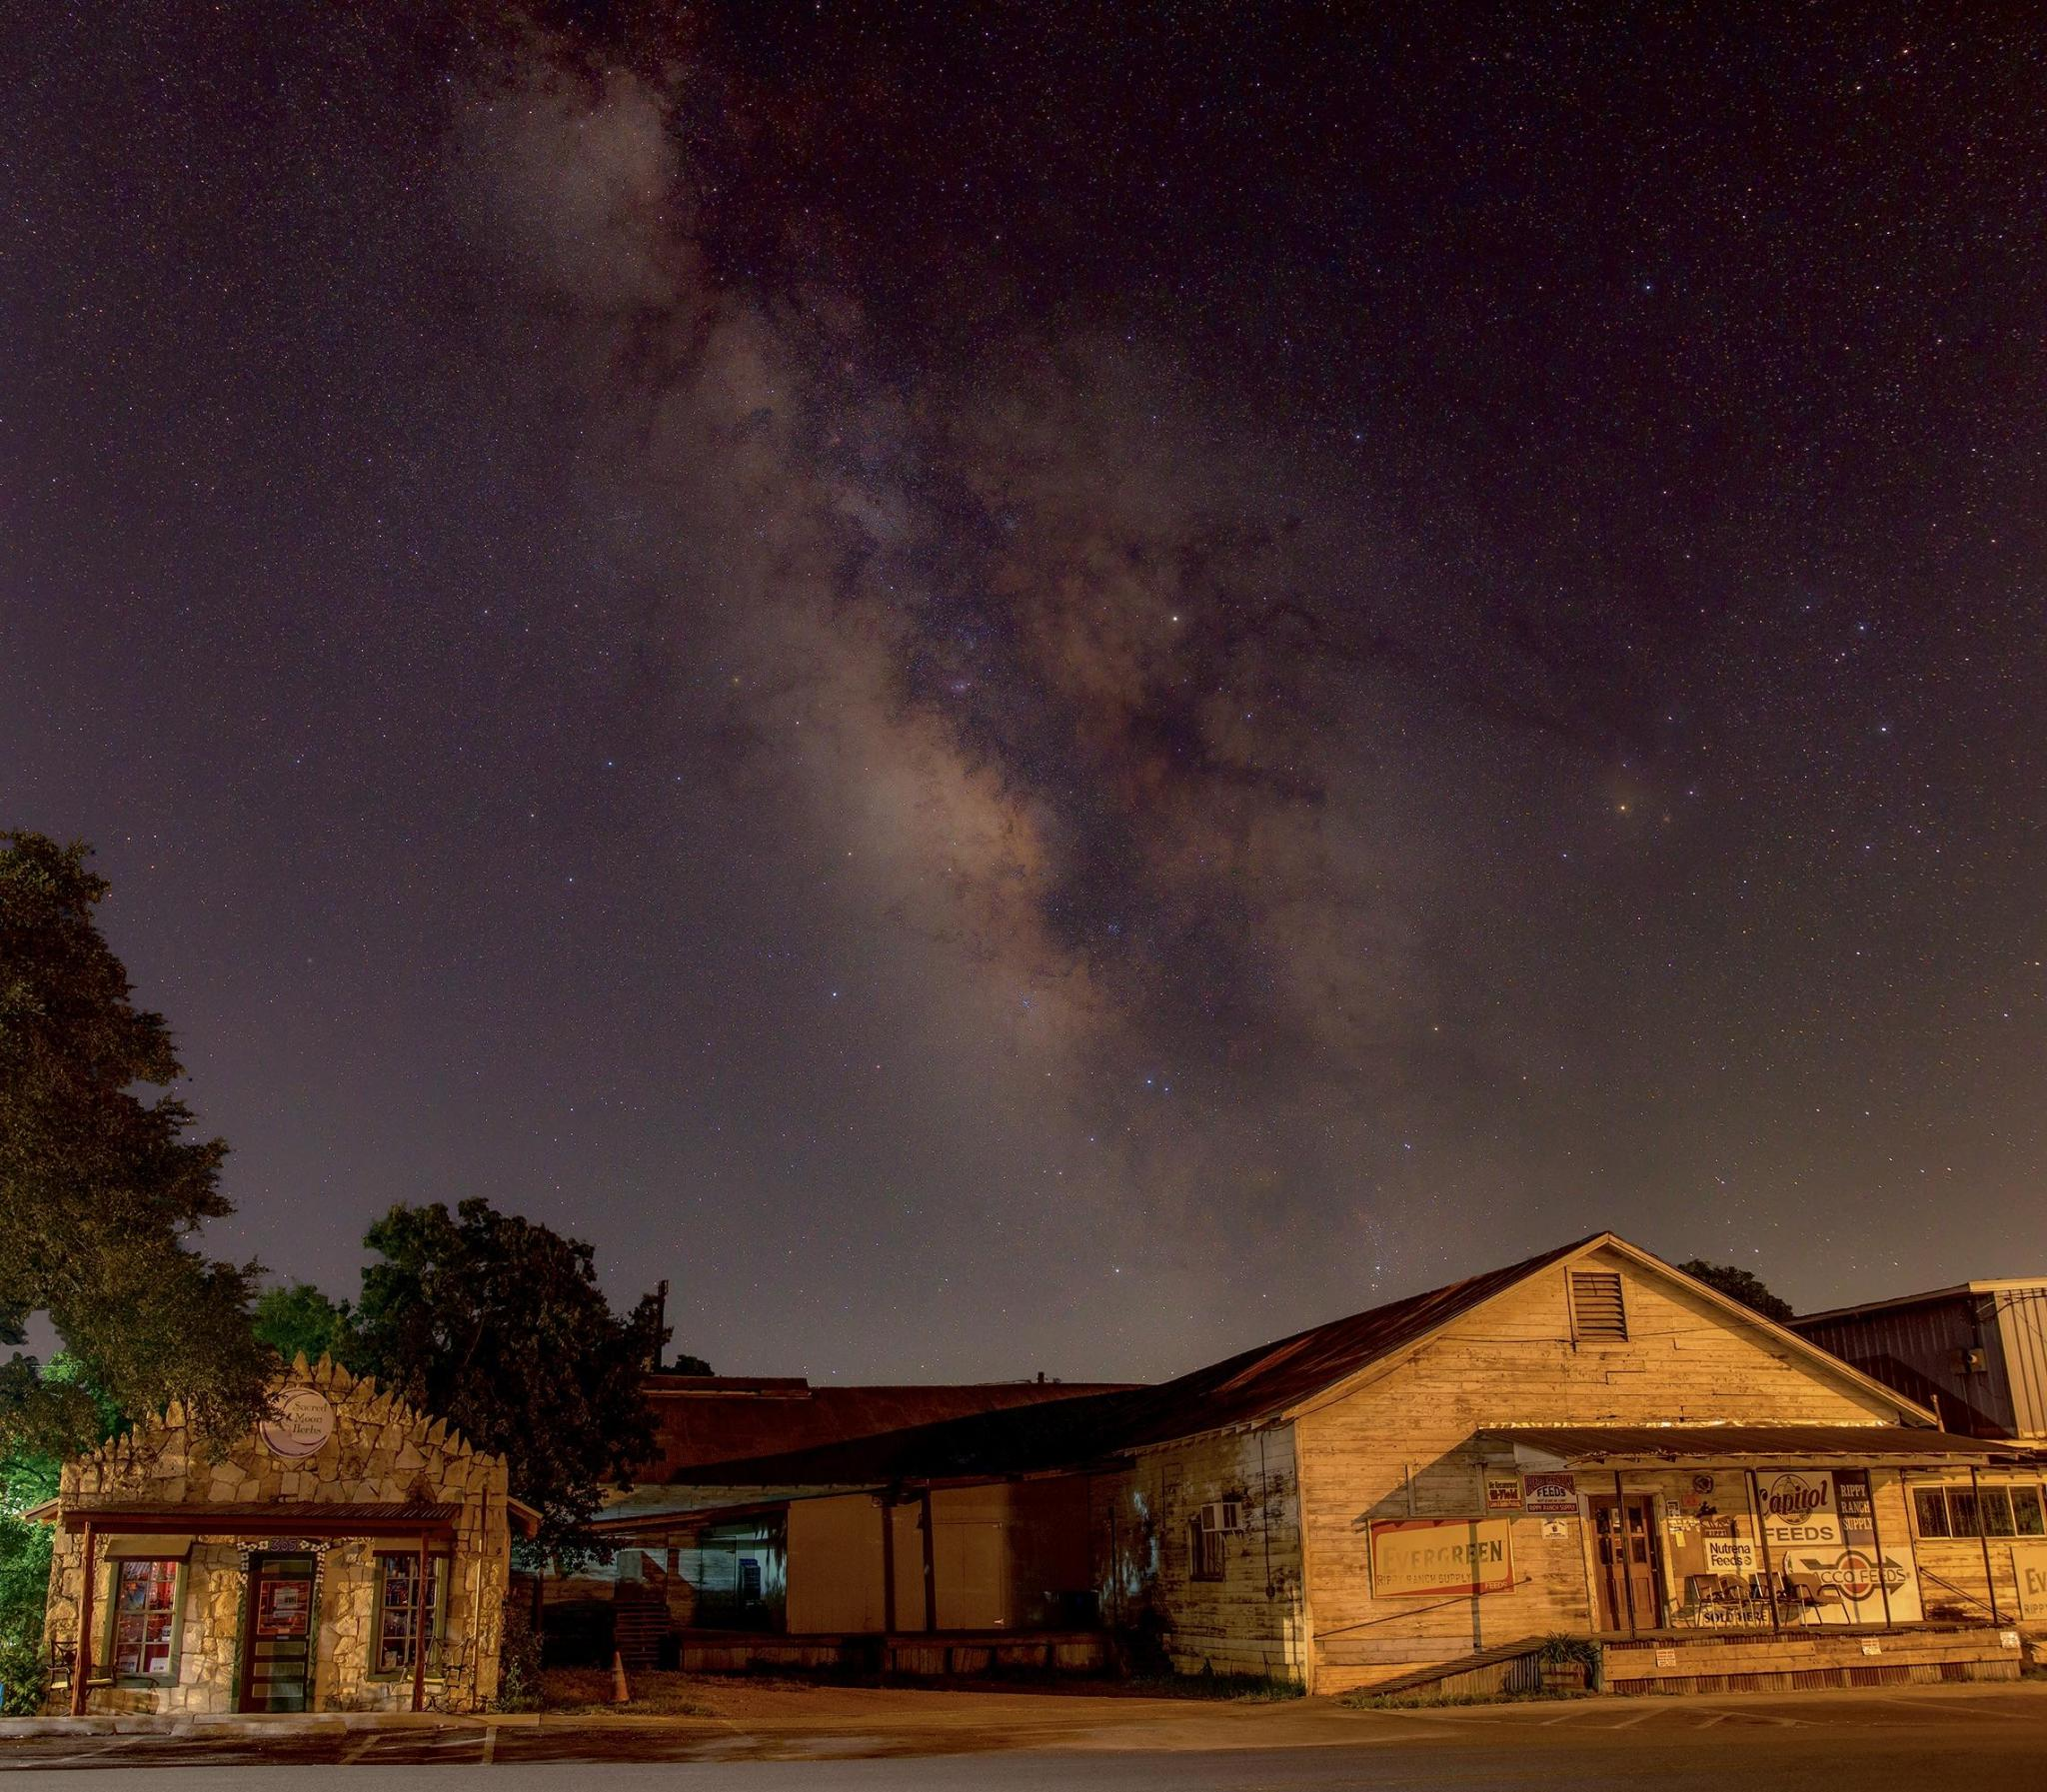 The Milky Way over the feed store on Mercer Street, approximately at 2 a.m.